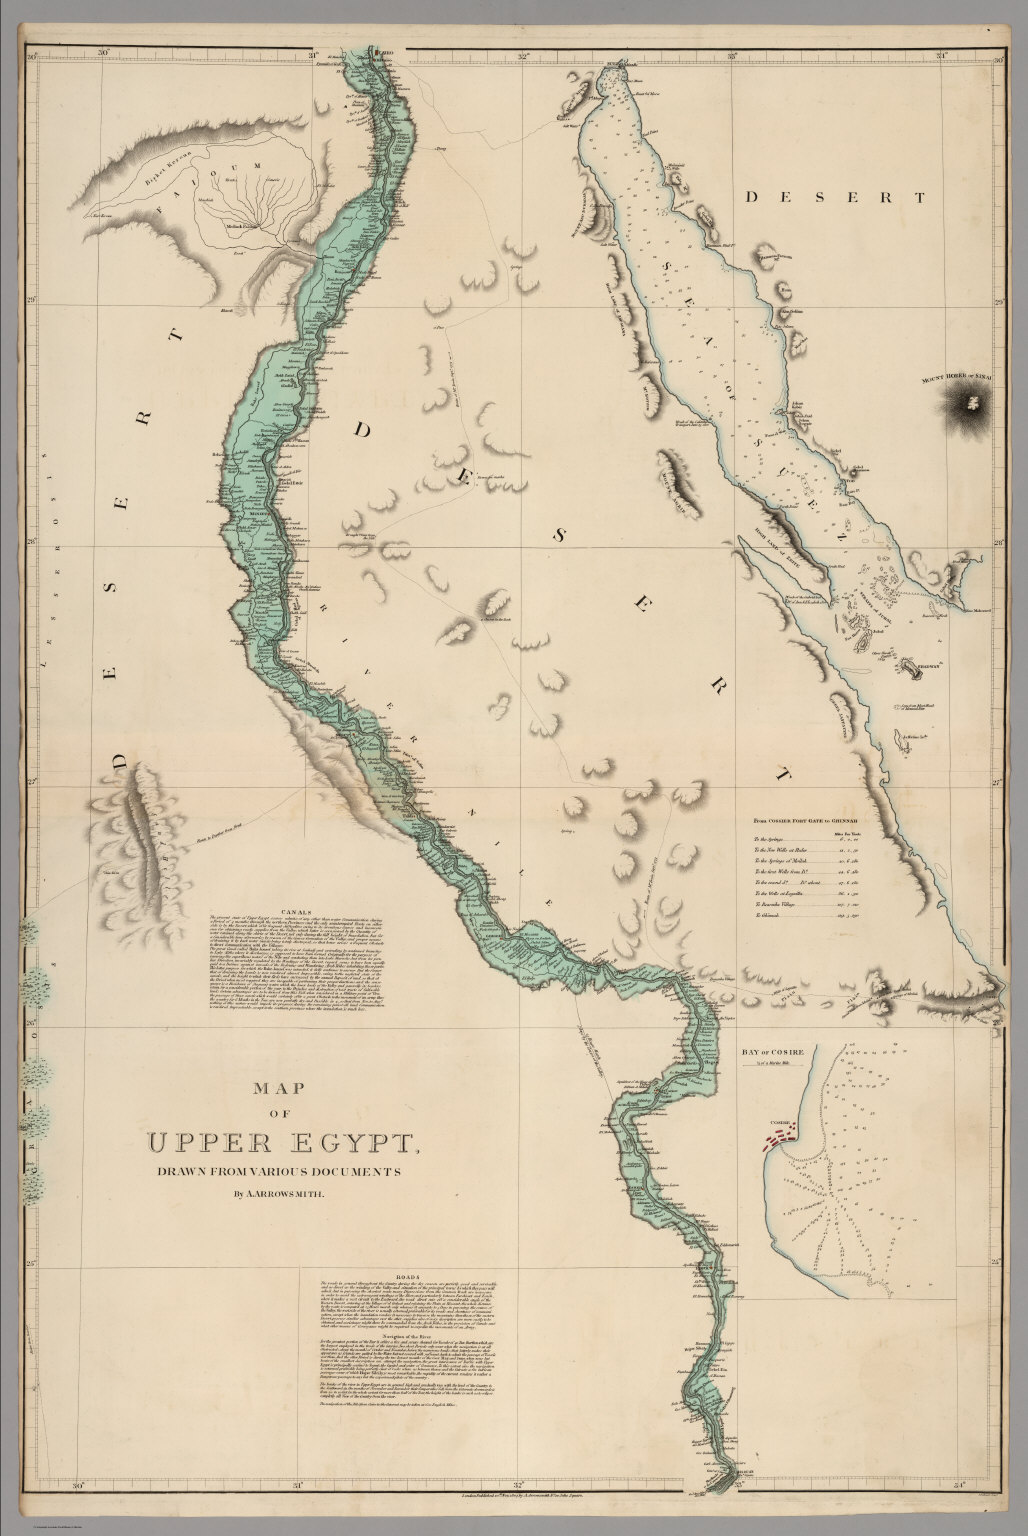 Map Of Upper Egypt Drawn From Various Documents David Rumsey - Map of upper egypt